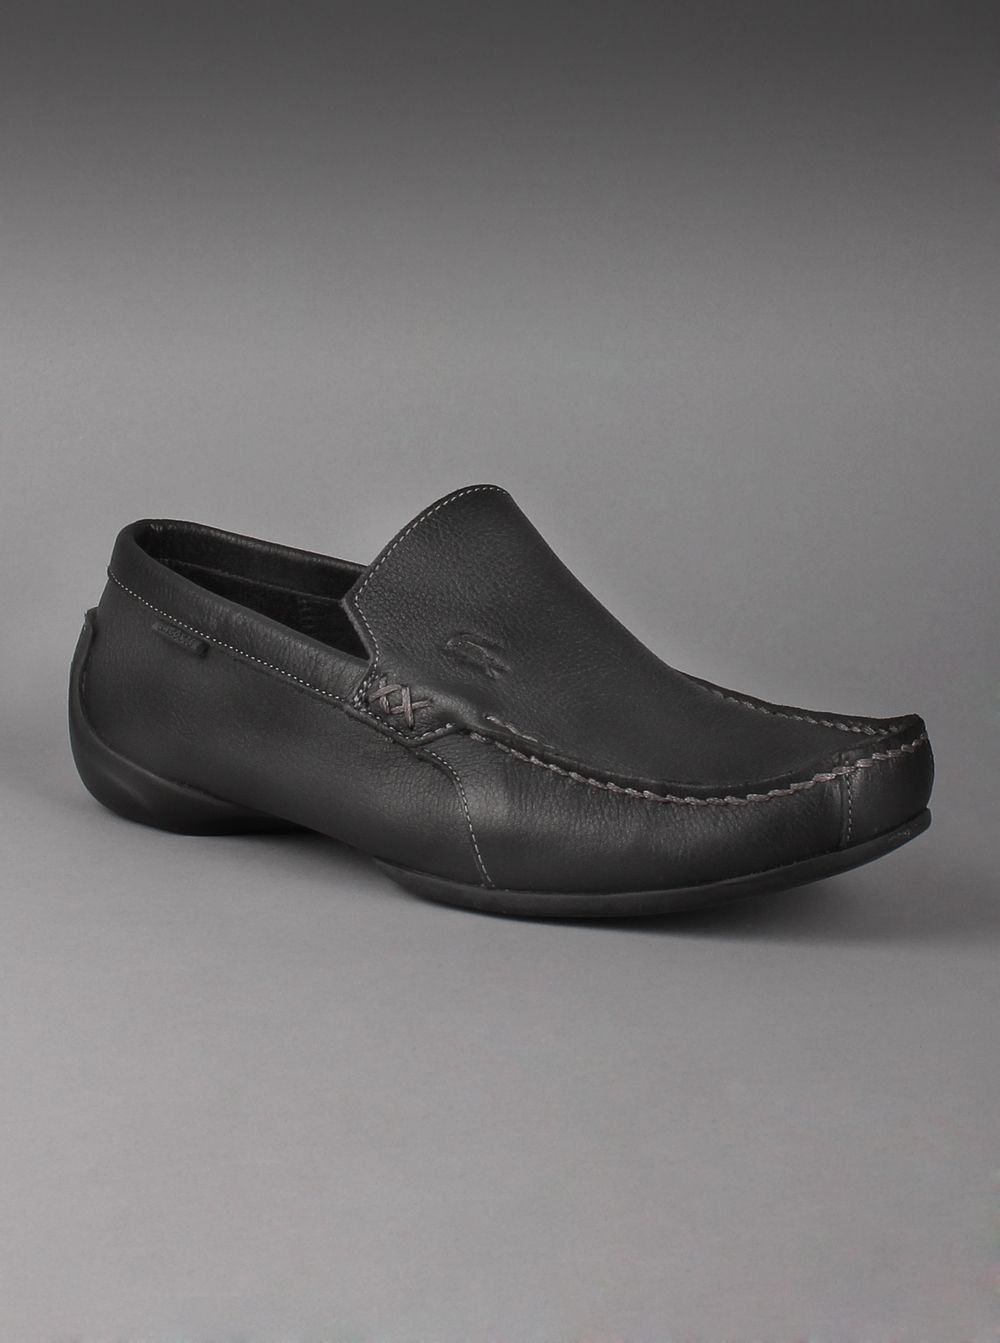 414beff14bc8 Lacoste® Men s Leather Shoes Argon Lexi 2 Loafers in Black Leave it to  Lacoste! Men s driving shoes have been reinvented with textured leather and  a comfy ...